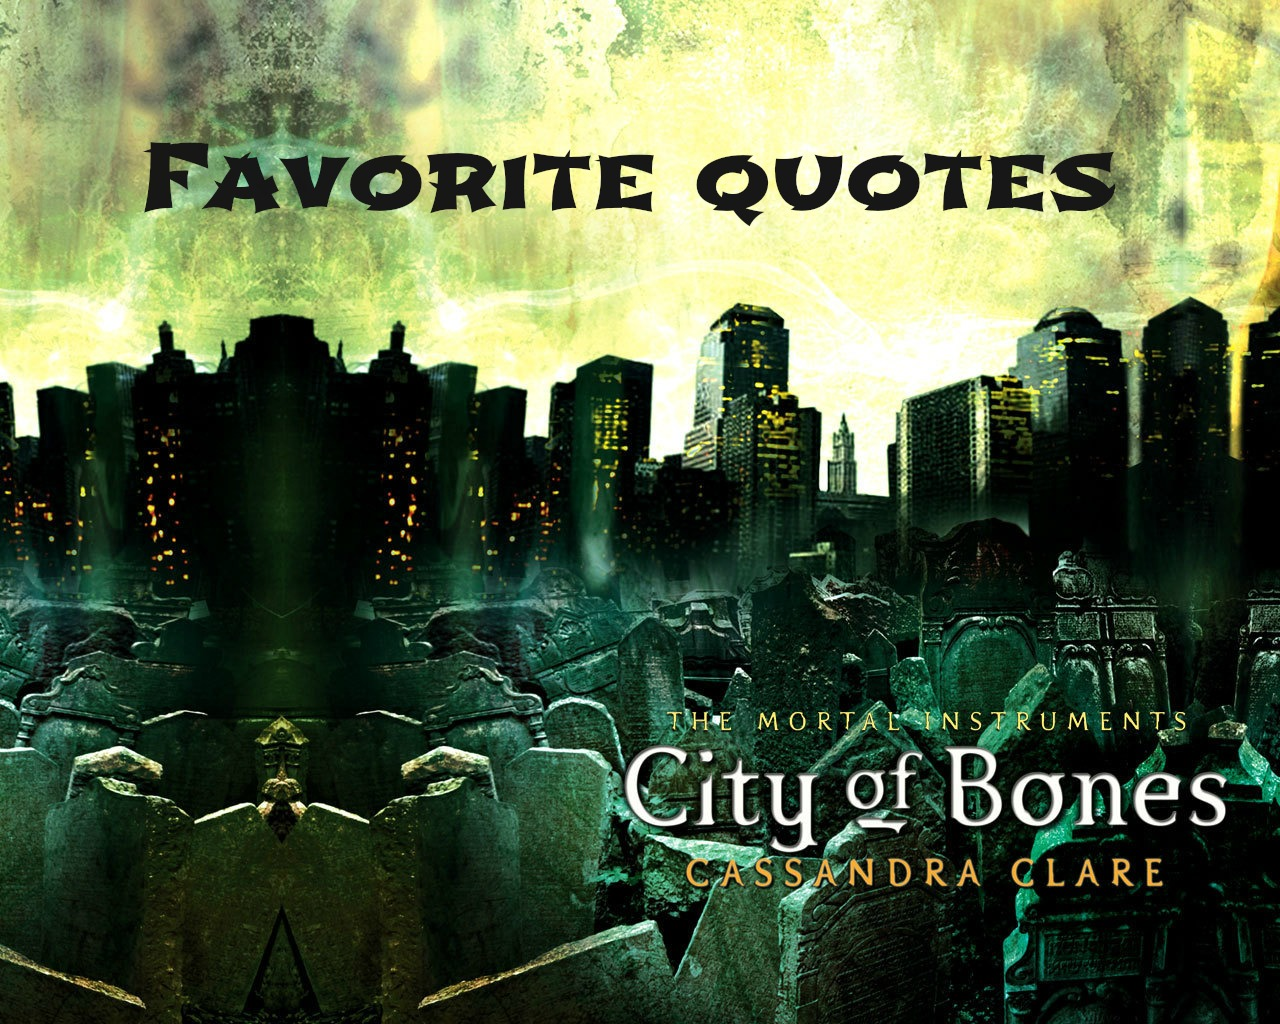 Quotes From Mortal Instruments City Of Bones The Mortal Inst...